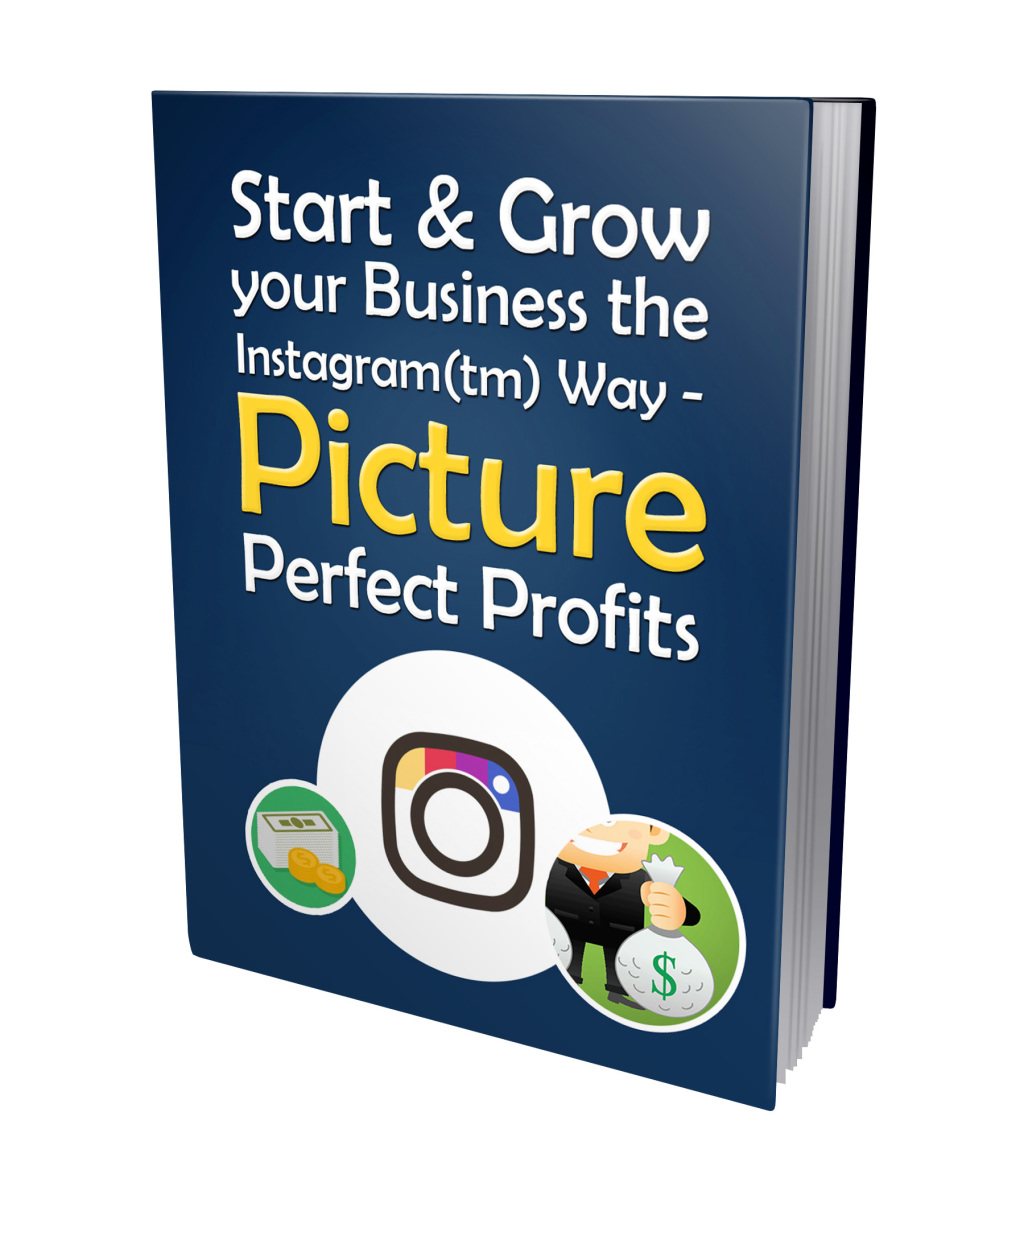 Start and Grow Your Business